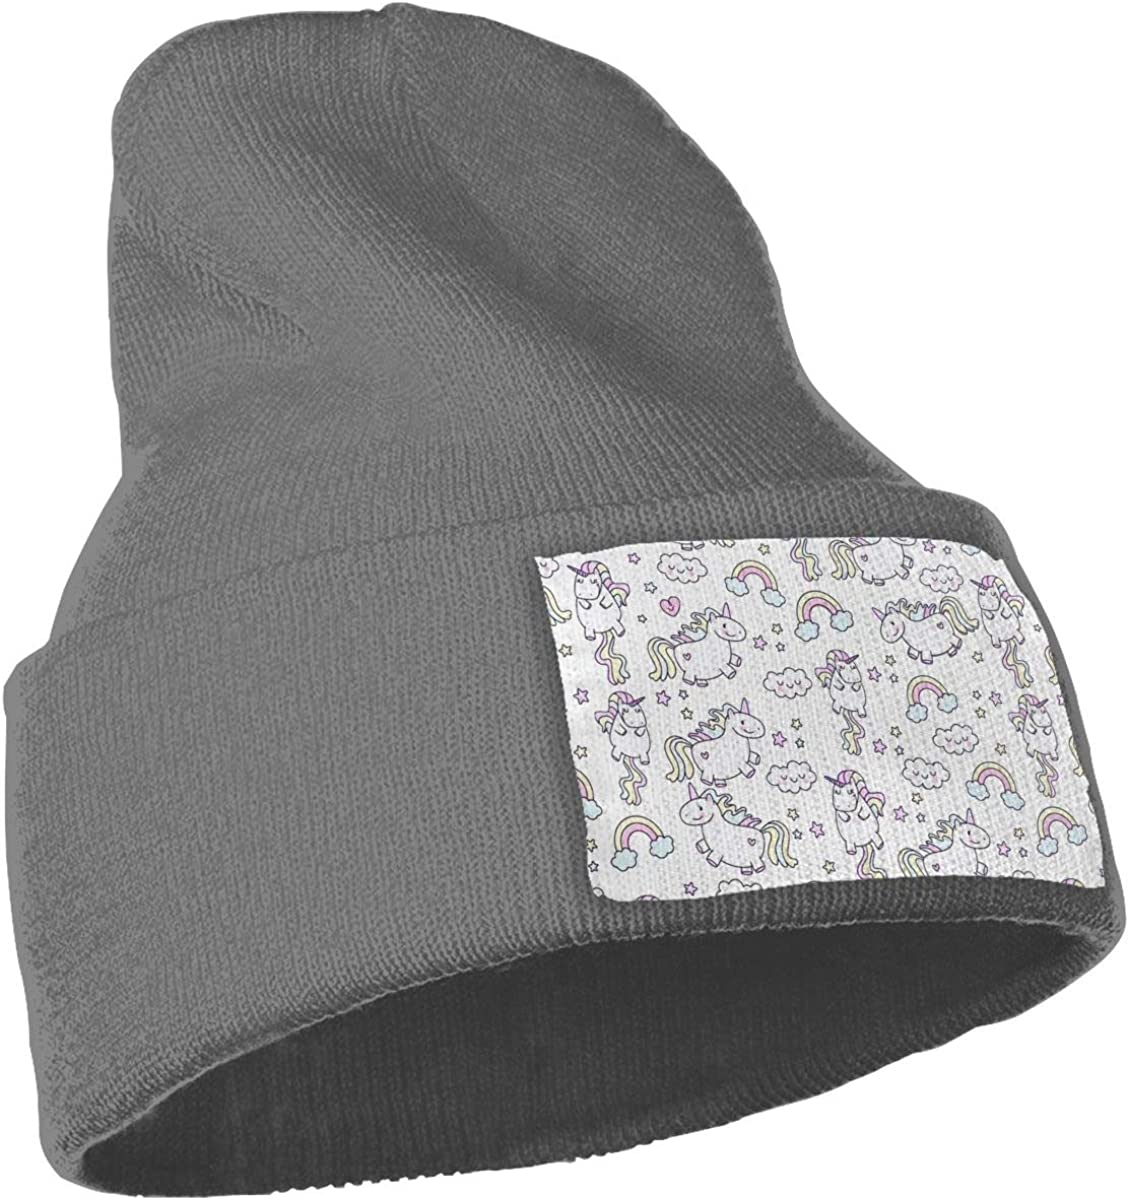 Unicorn Hat for Men and Women Winter Warm Hats Knit Slouchy Thick Skull Cap Black